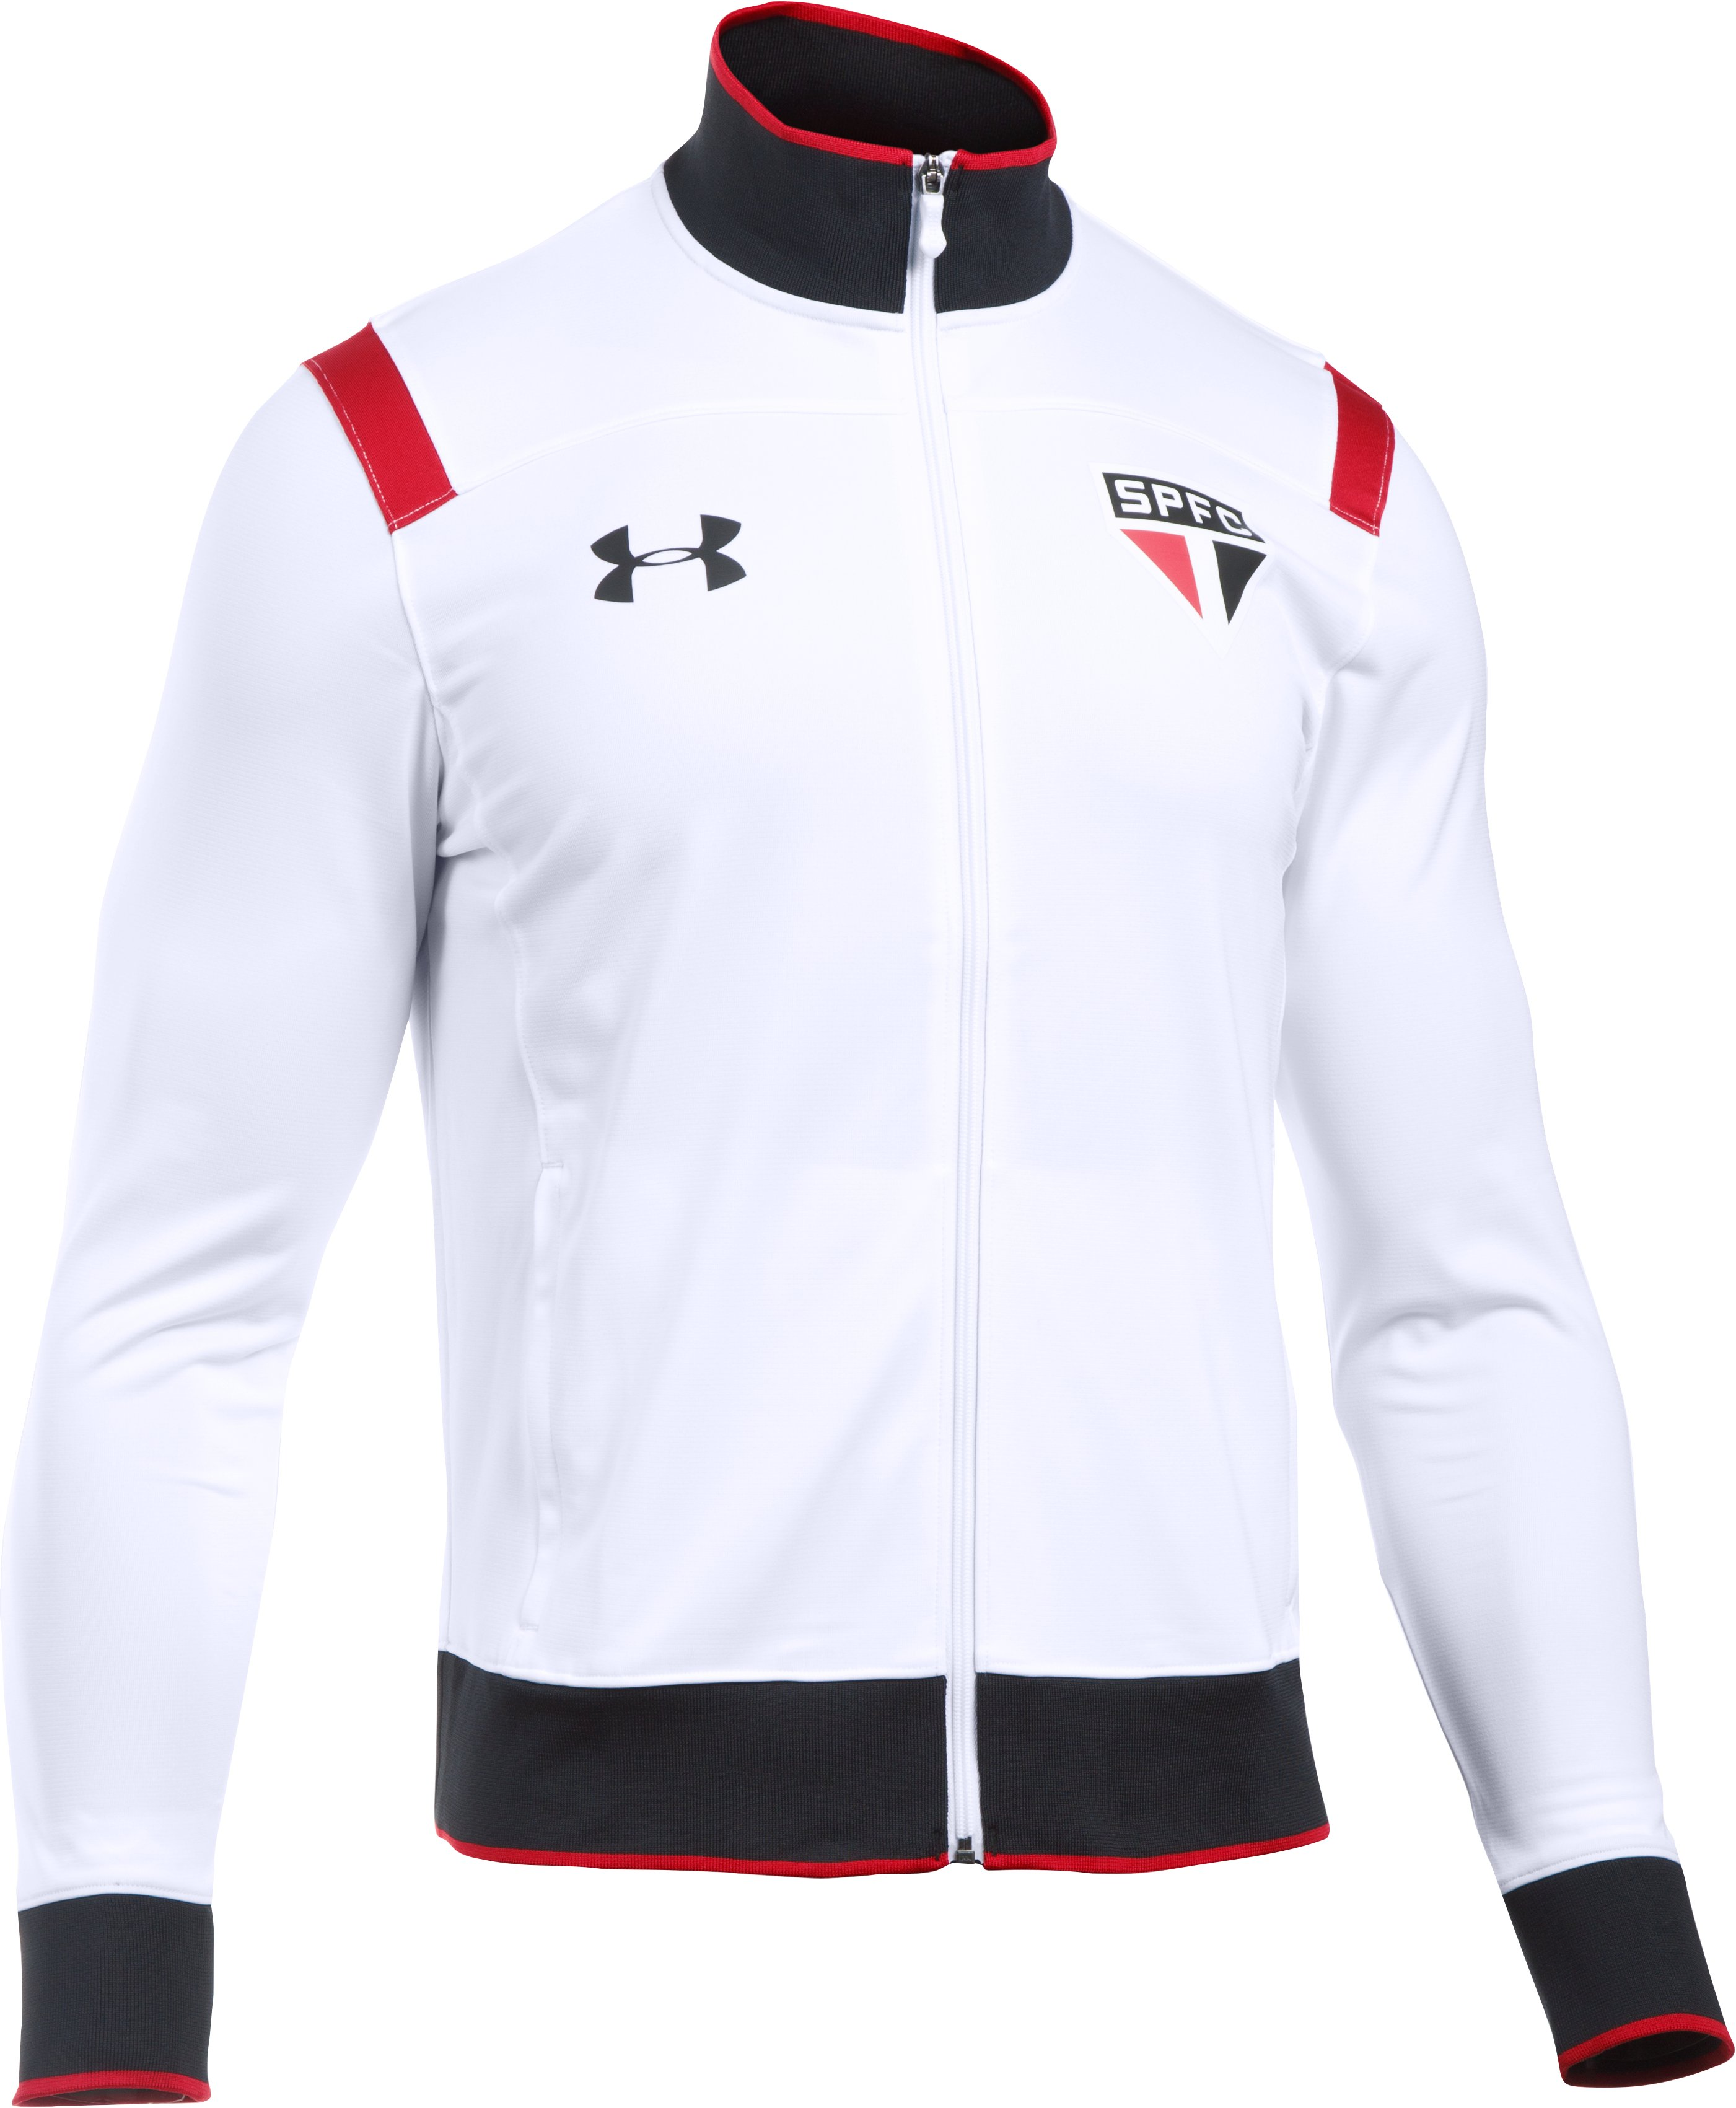 Men's Sao Paulo Track Jacket, White